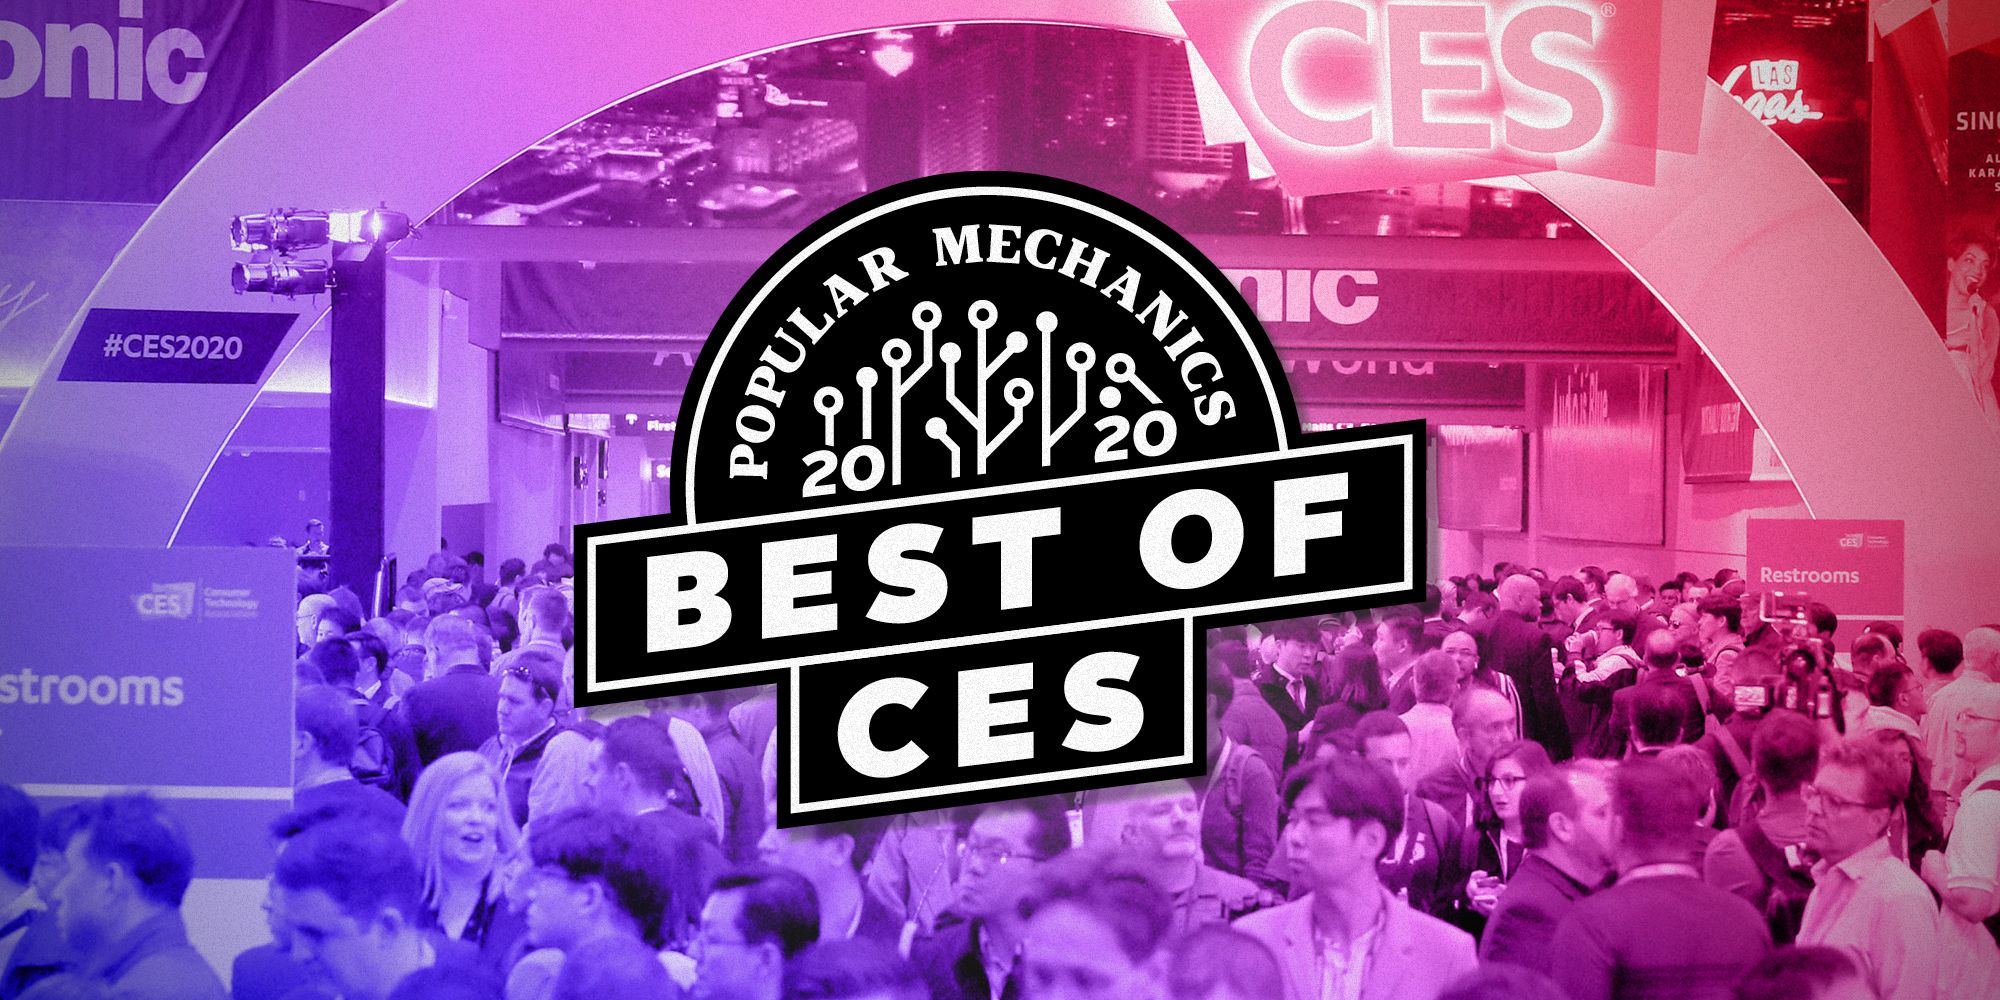 CES Editors' Choice Awards: The Most Exciting Tech for 2020